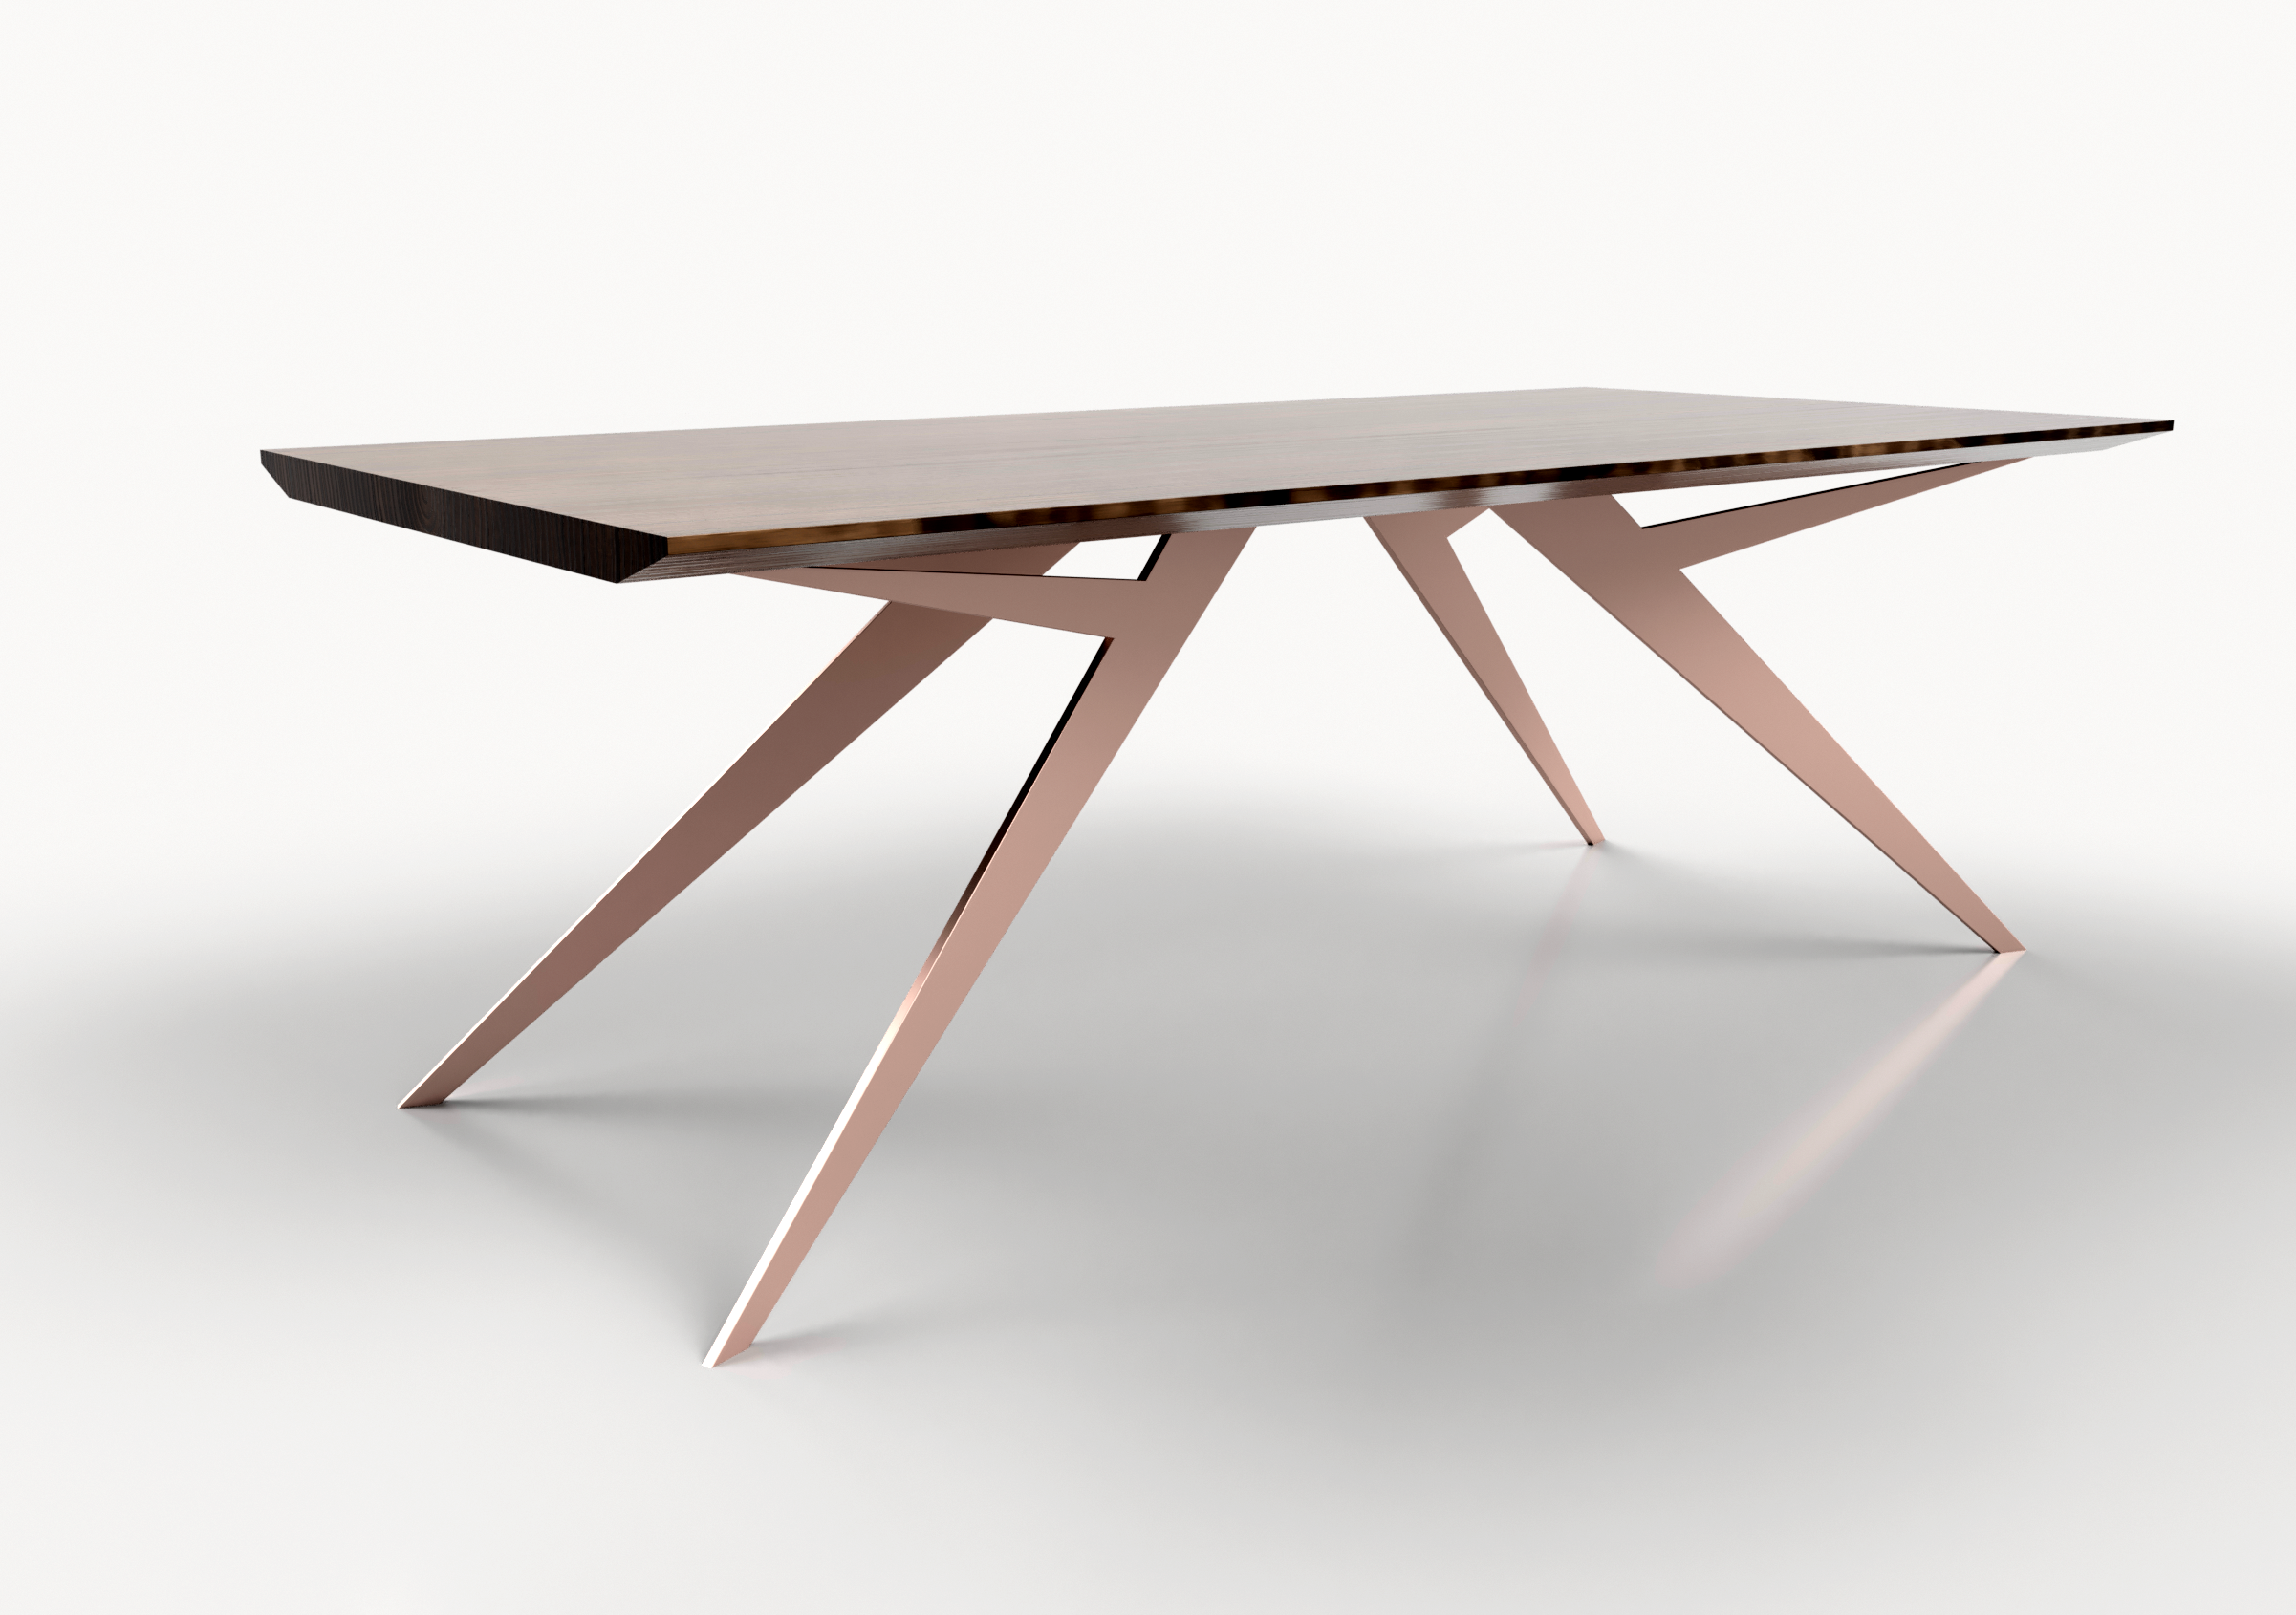 Vanni_Coffee_table_2017-Oct-28_10-36-31PM-000_CustomizedView5764855313_3-4.png